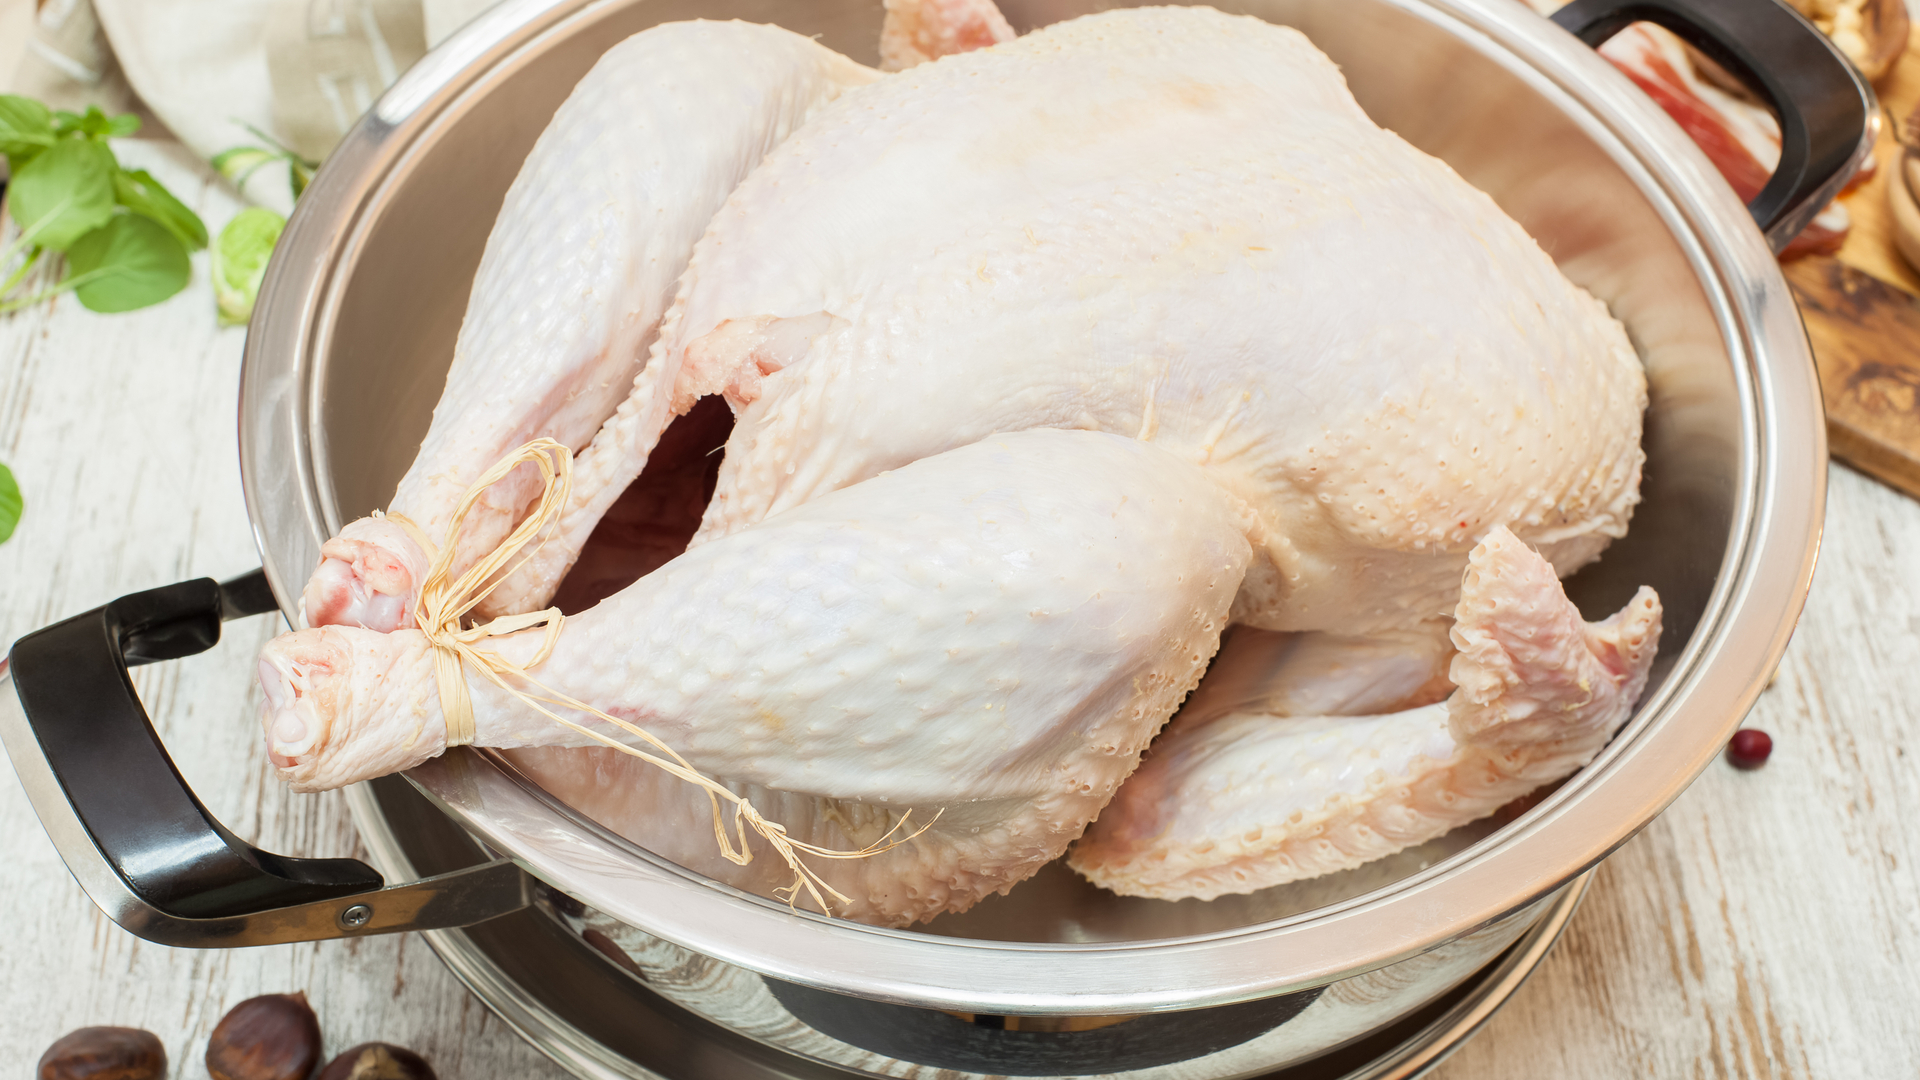 Did Julia Child Drop a Turkey on the Floor and Cook It Anyway?